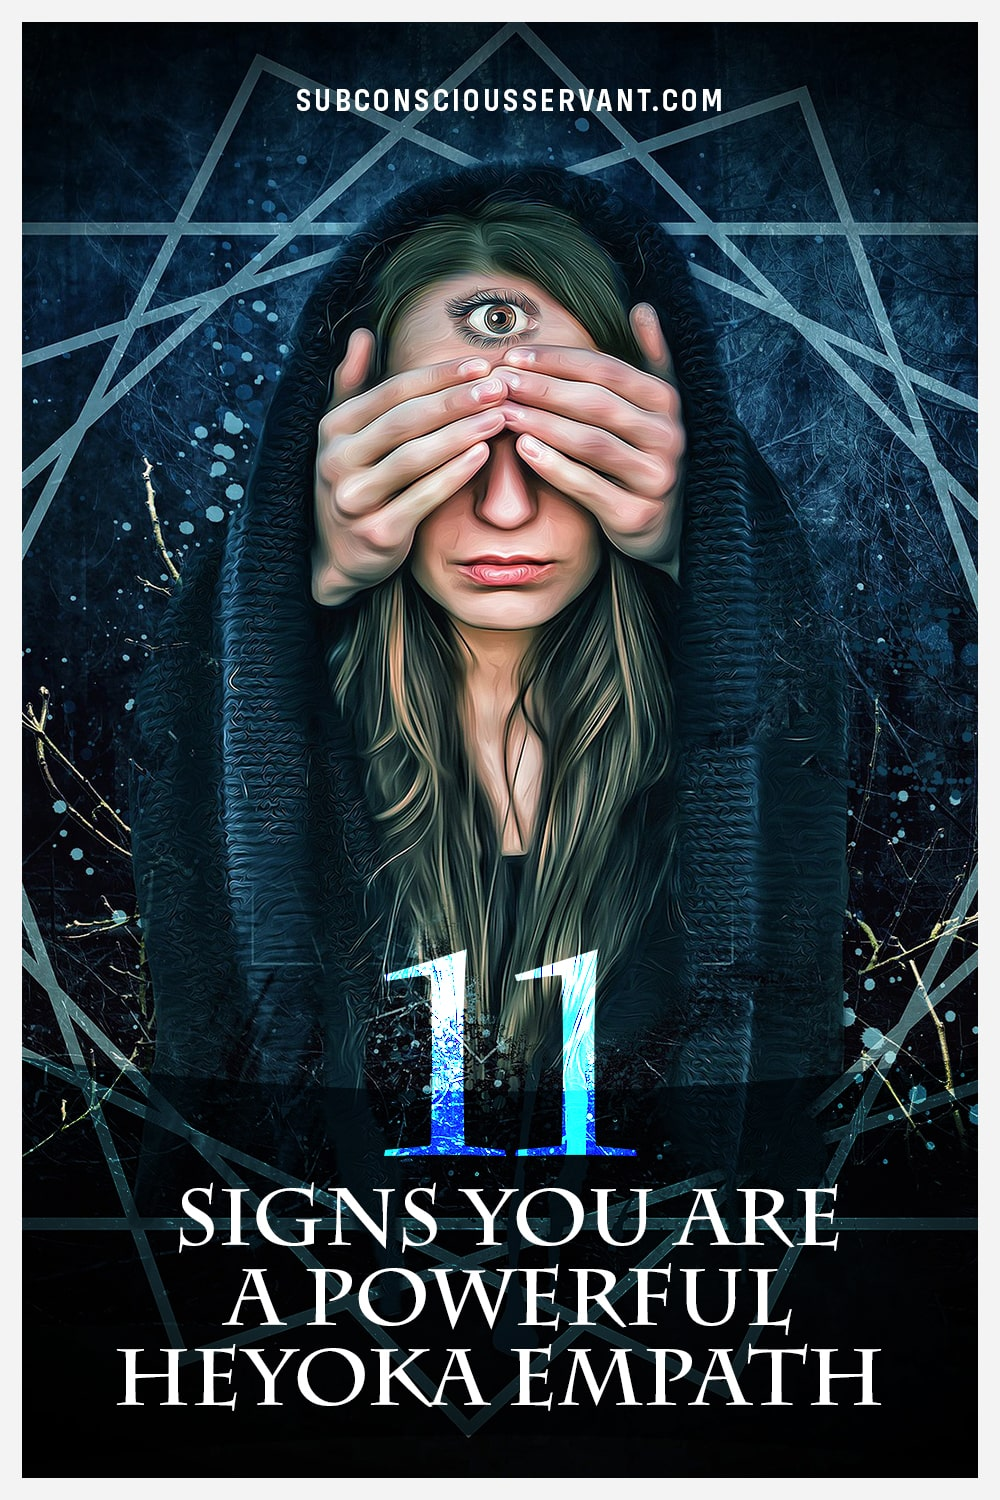 Heyoka Empath - 11 Signs You Are This Powerful & Rare Kind Of Empath